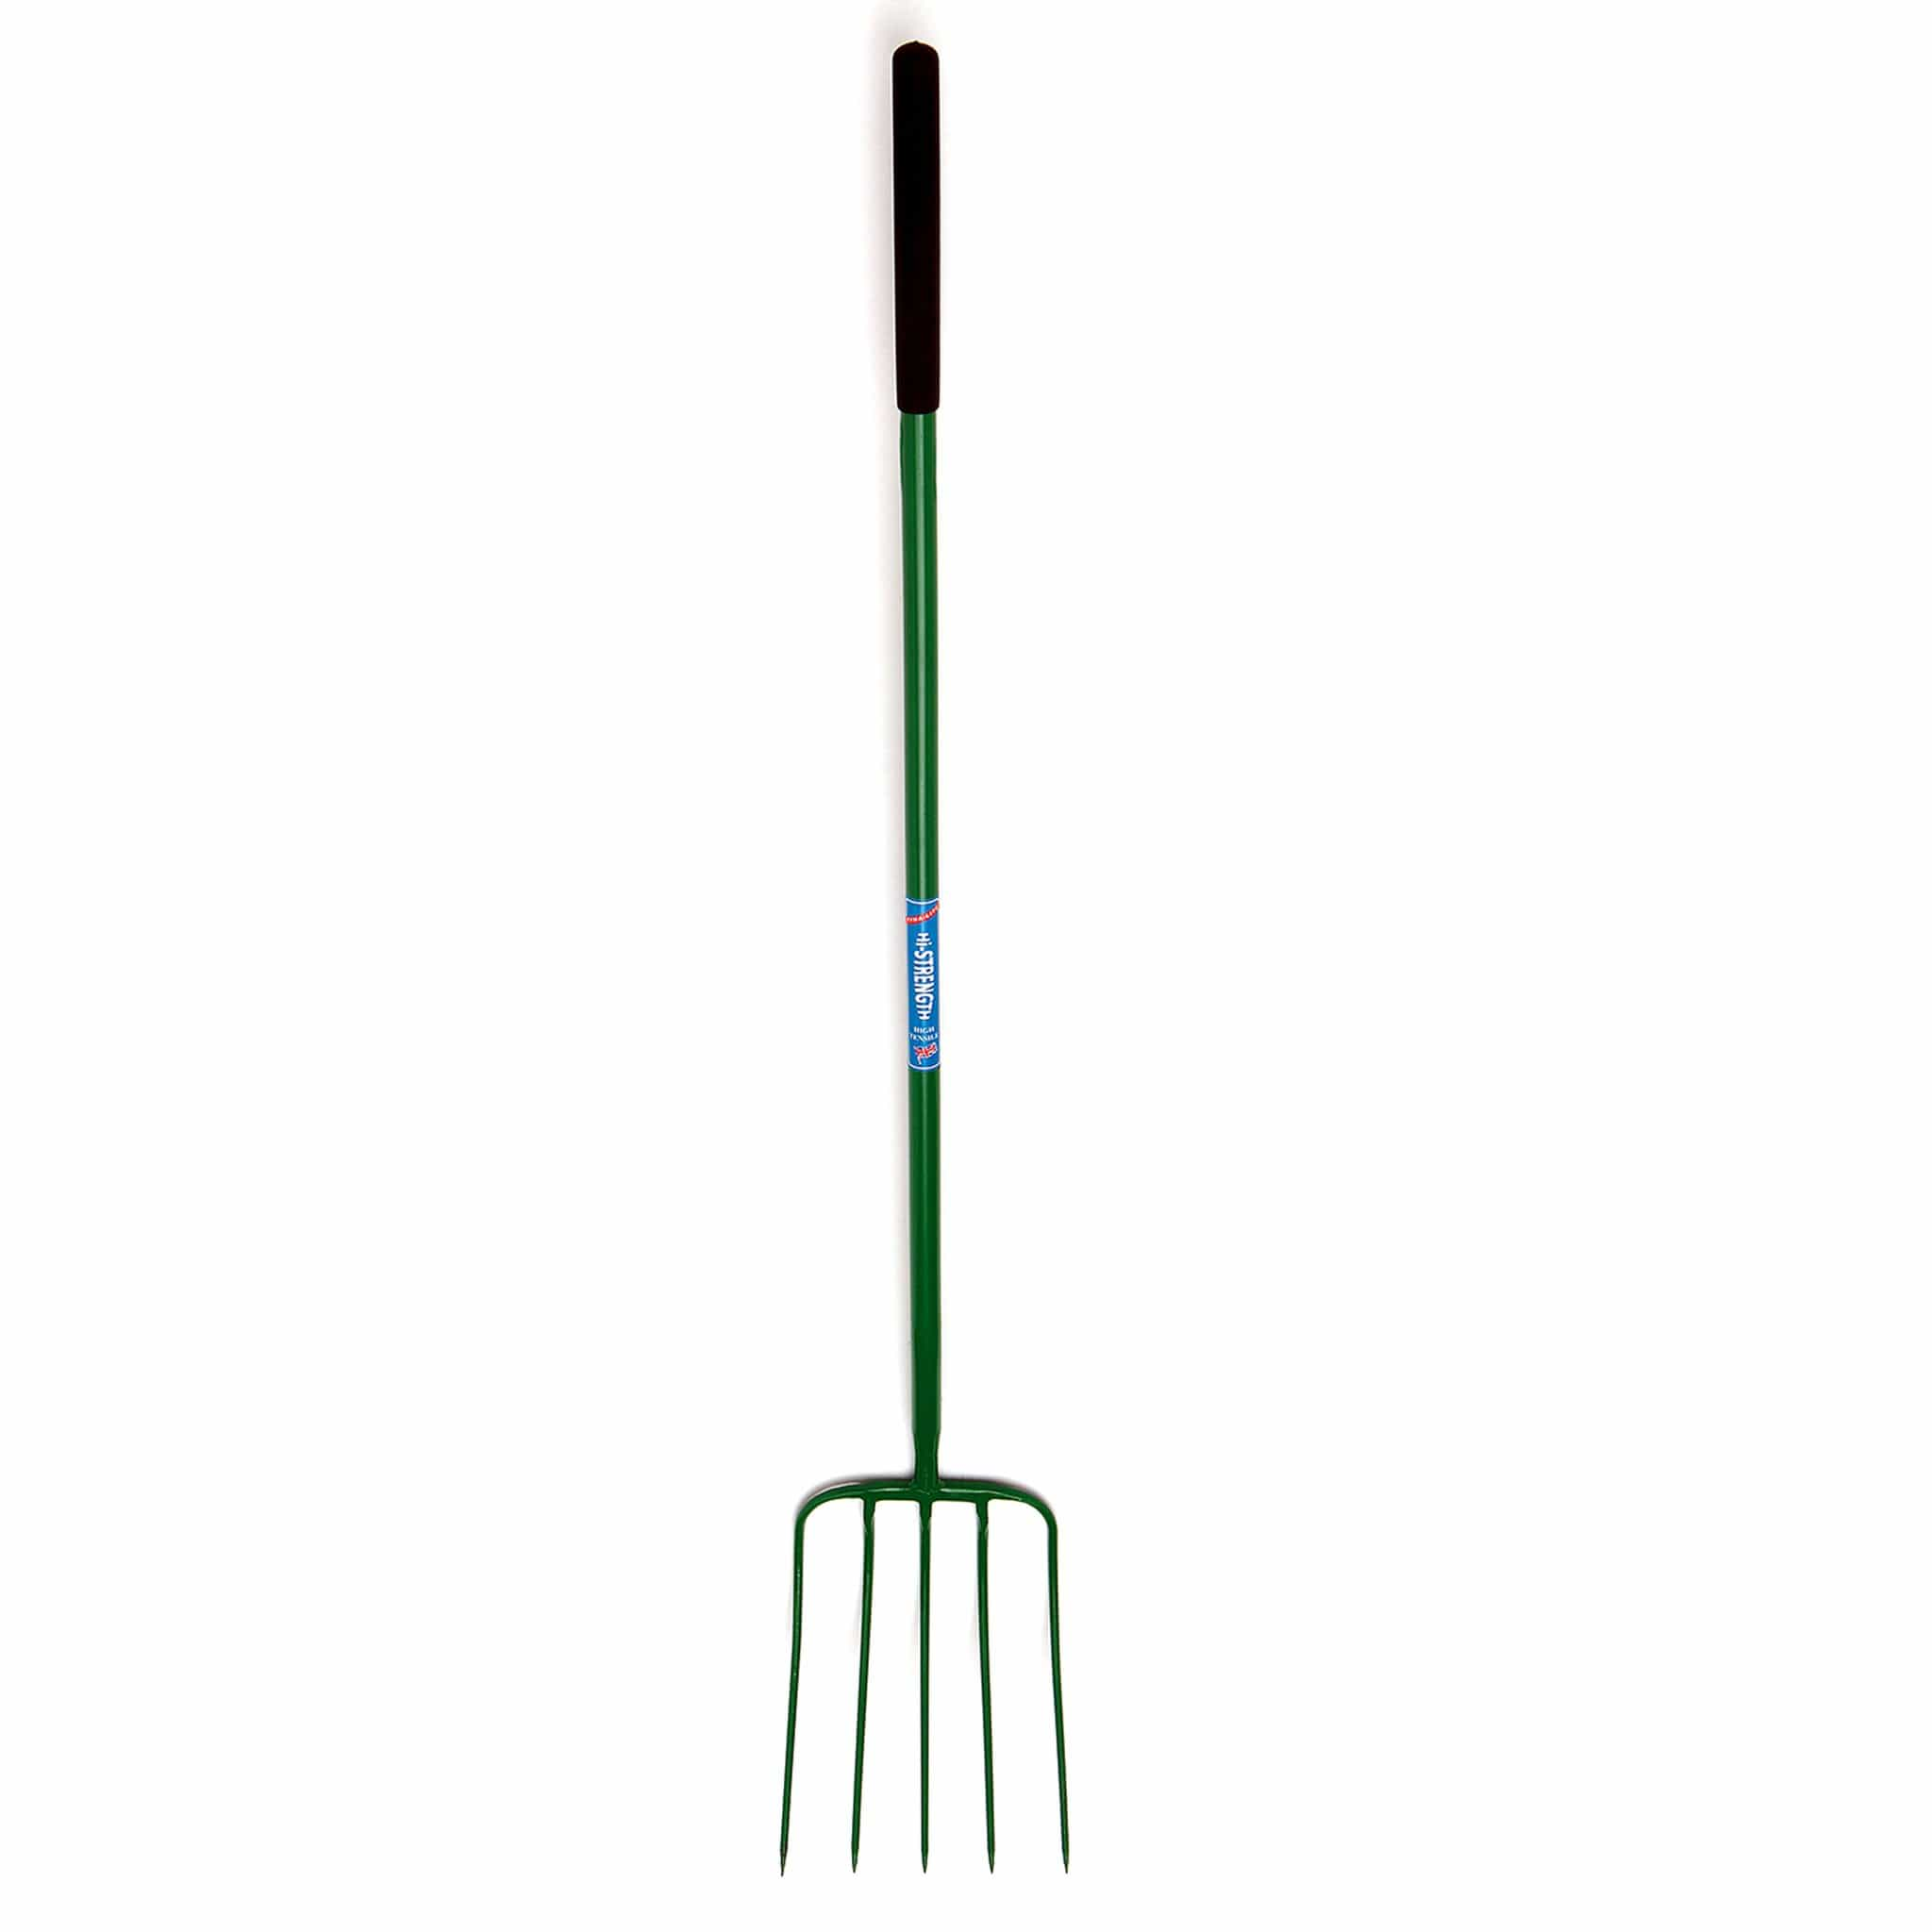 Fyna-Lite High-Strength 5 Prong Manure Fork Long Handle FYN0050.